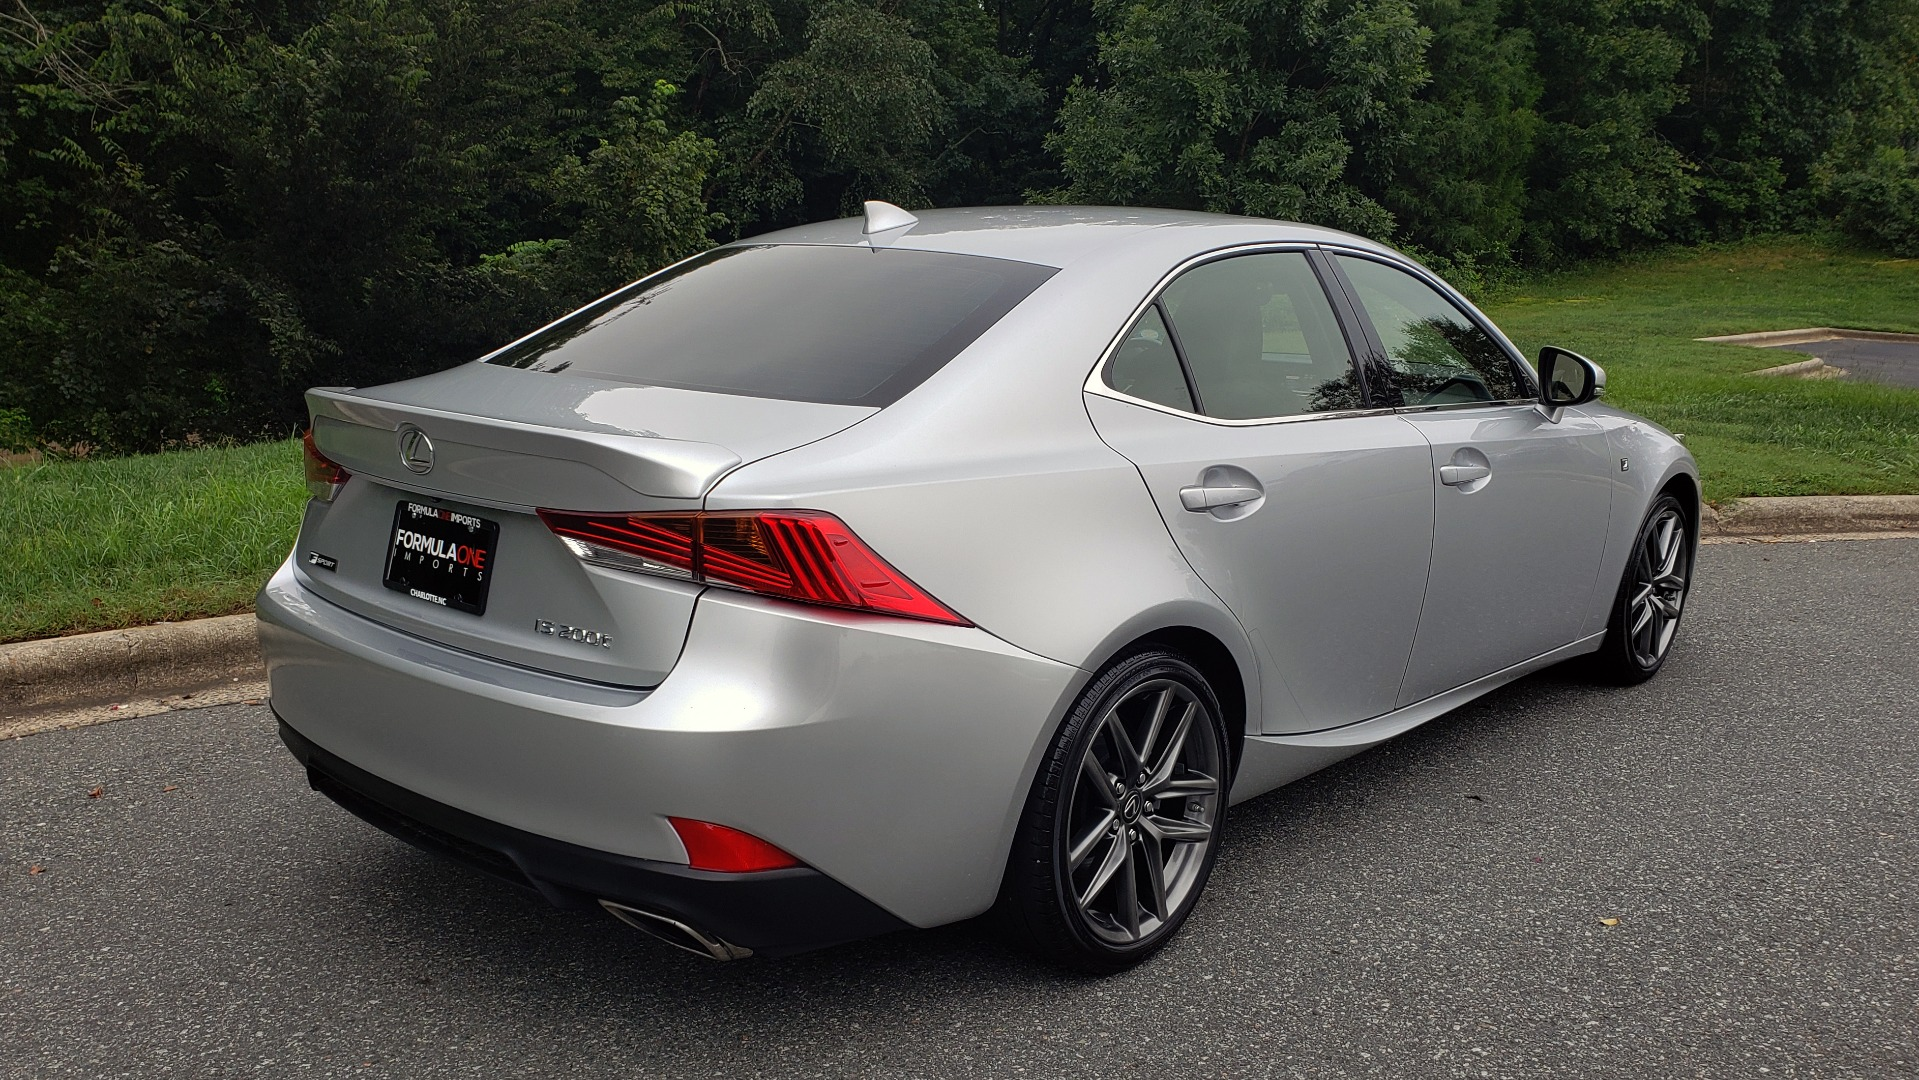 Used 2017 Lexus IS 200T F-SPORT / LEATHER / SUNROOF / 18IN WHEELS / REARVIEW for sale Sold at Formula Imports in Charlotte NC 28227 7